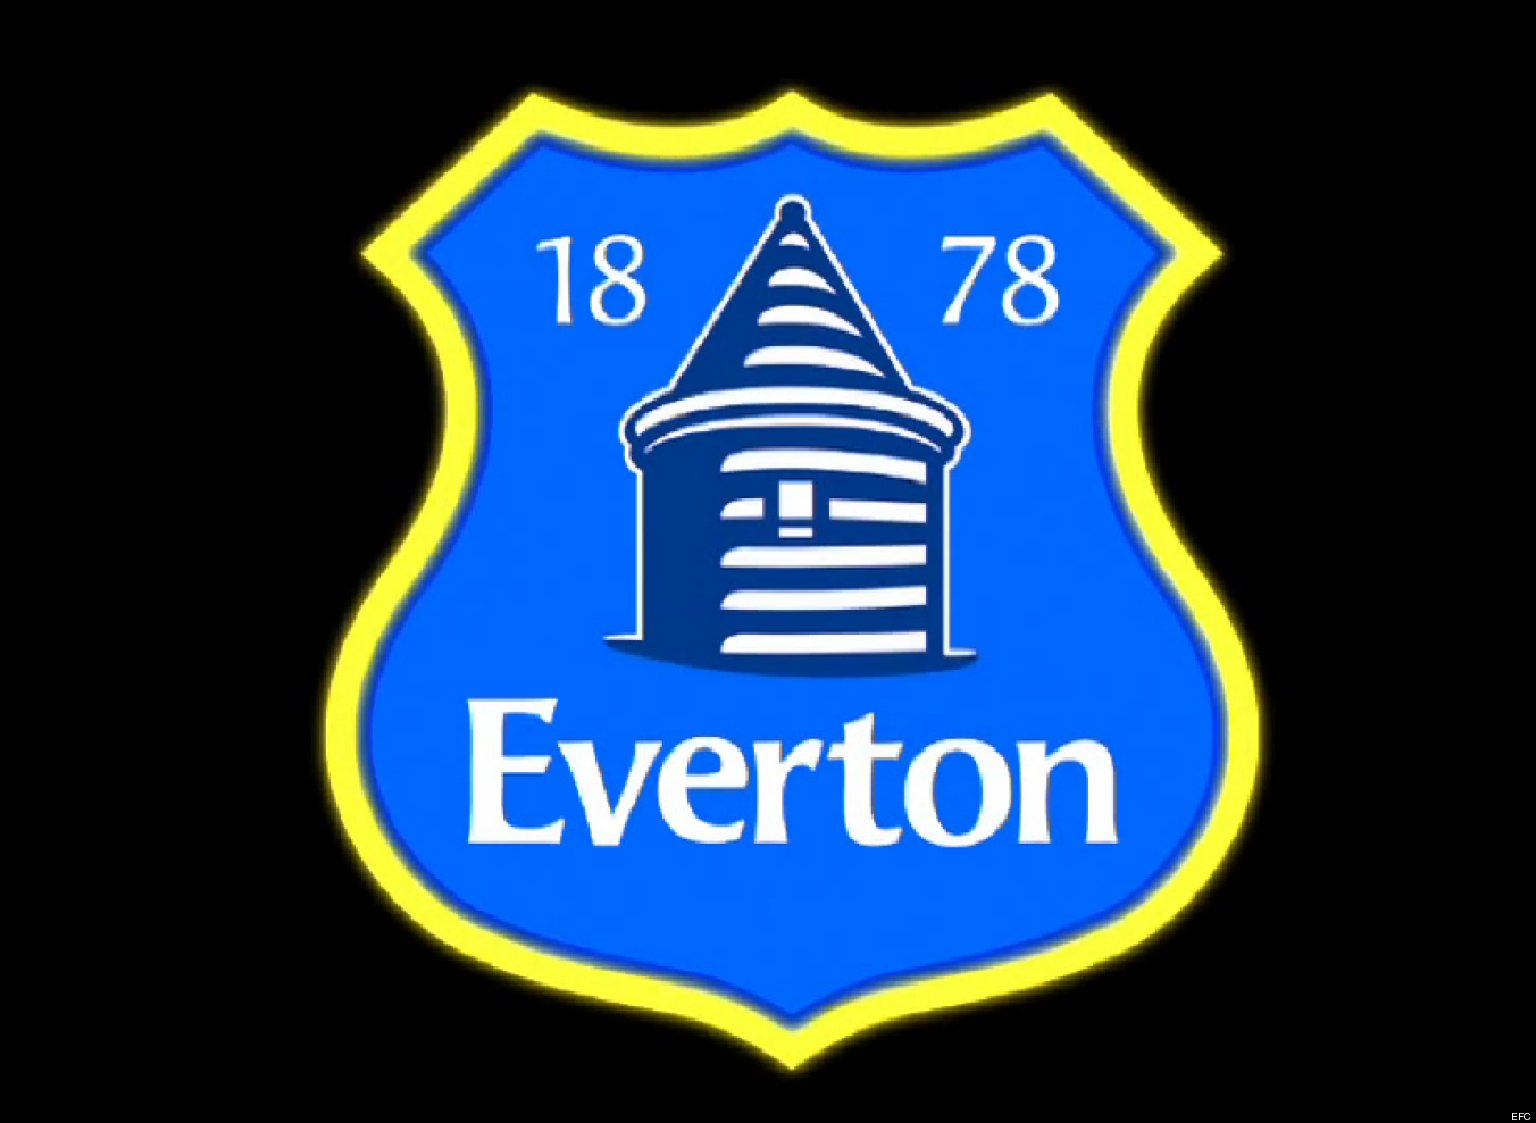 everton - photo #8